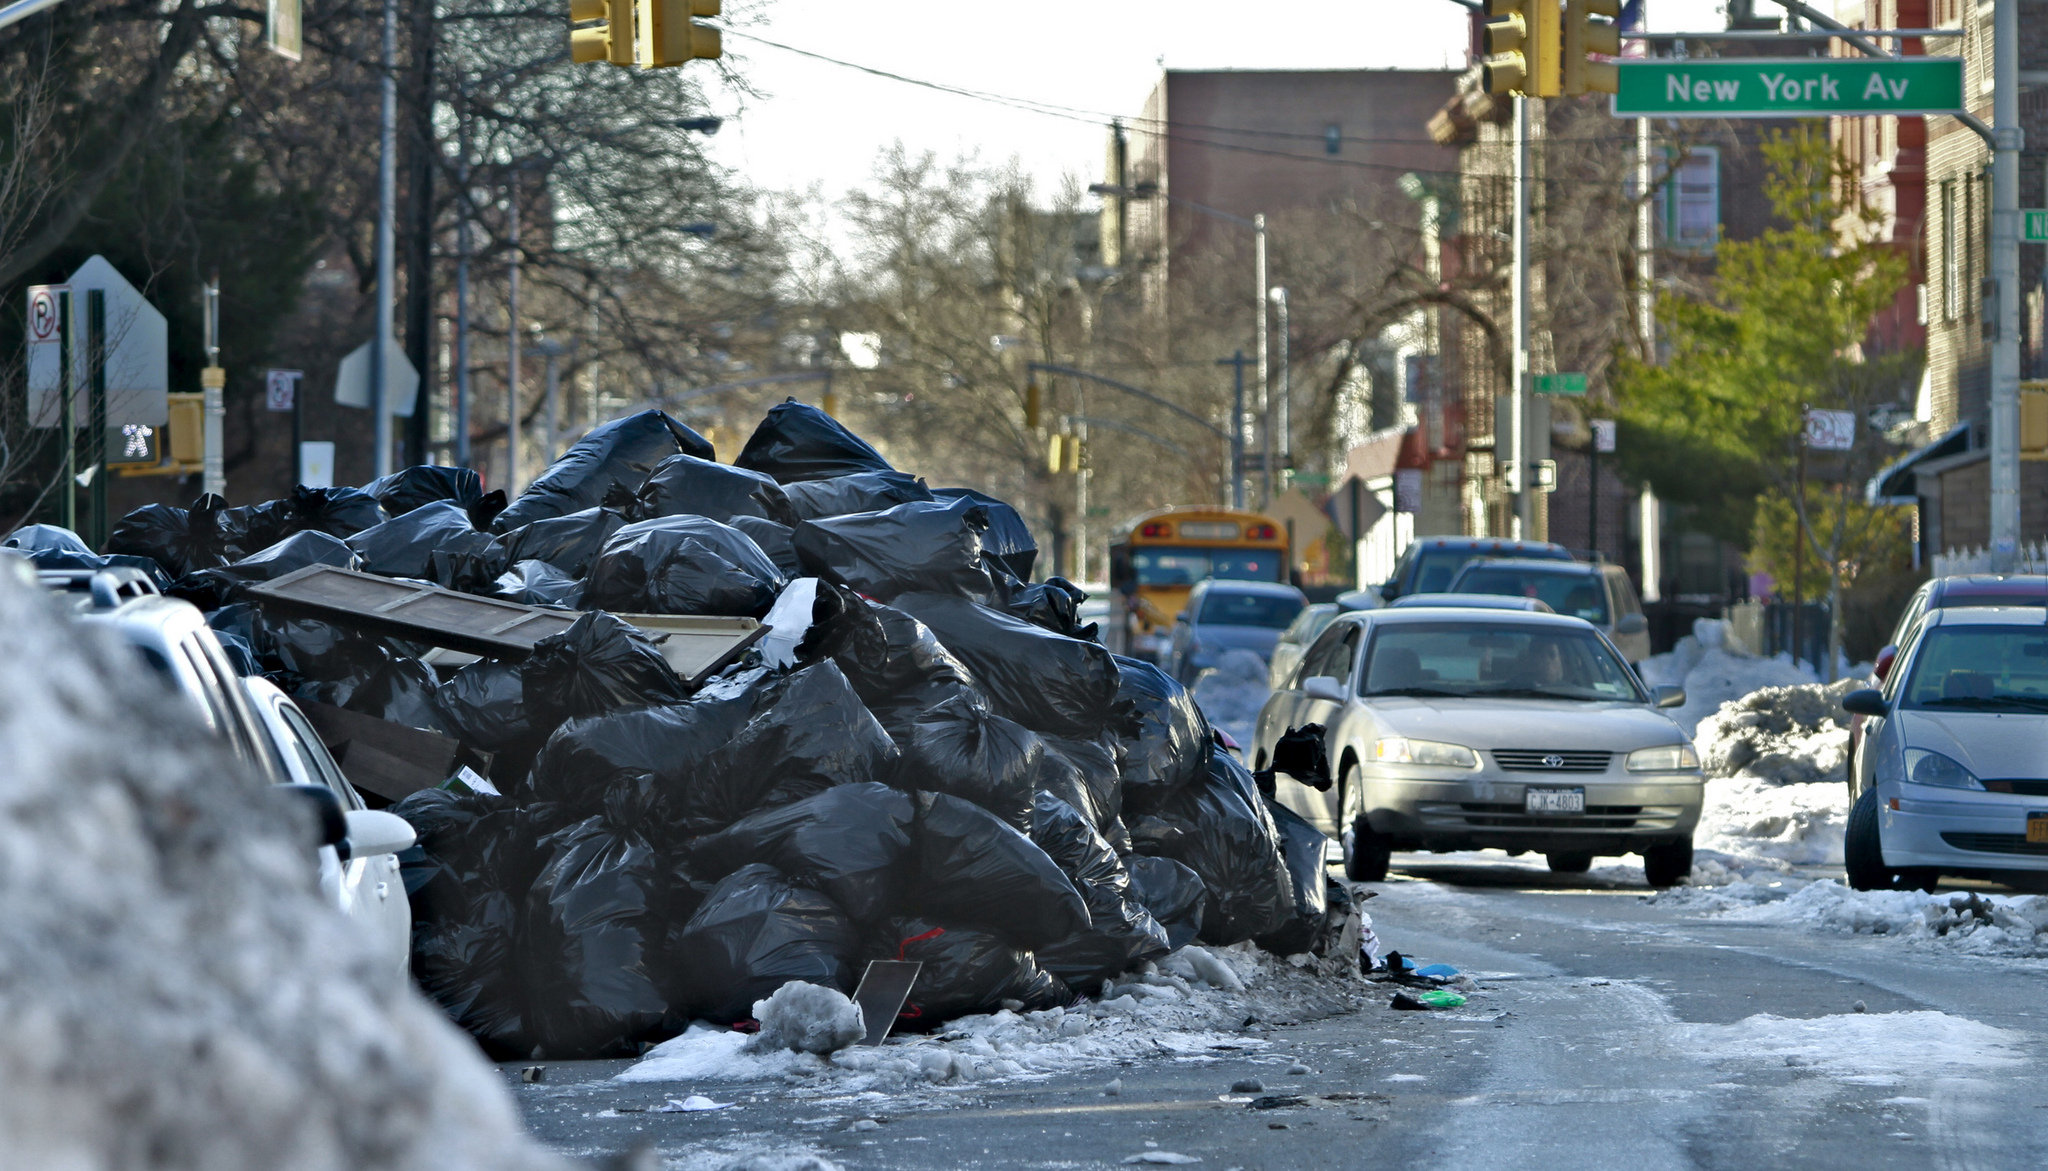 new york city s garbage crisis New york city residents produce 11,000 tons of garbage every day every day this astonishing statistic is just one of the reasons robin nagle started a research.